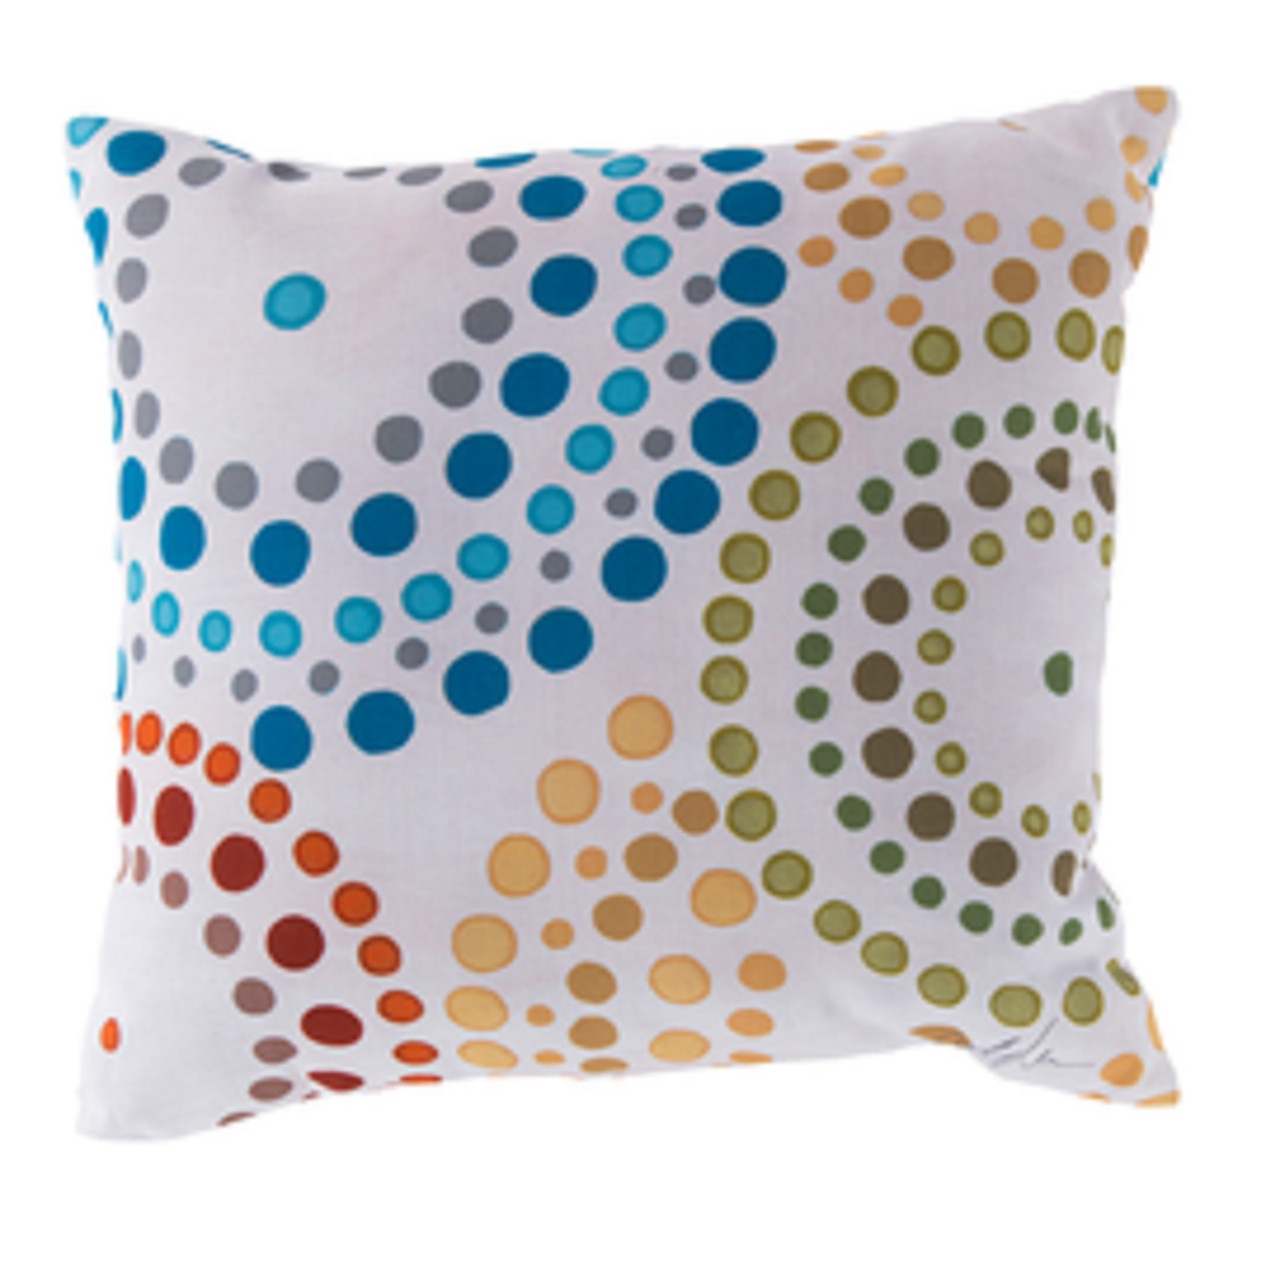 18 multi colored nautica shower bursts square outdoor pillow shell 30990537 - Christmas Outdoor Pillows